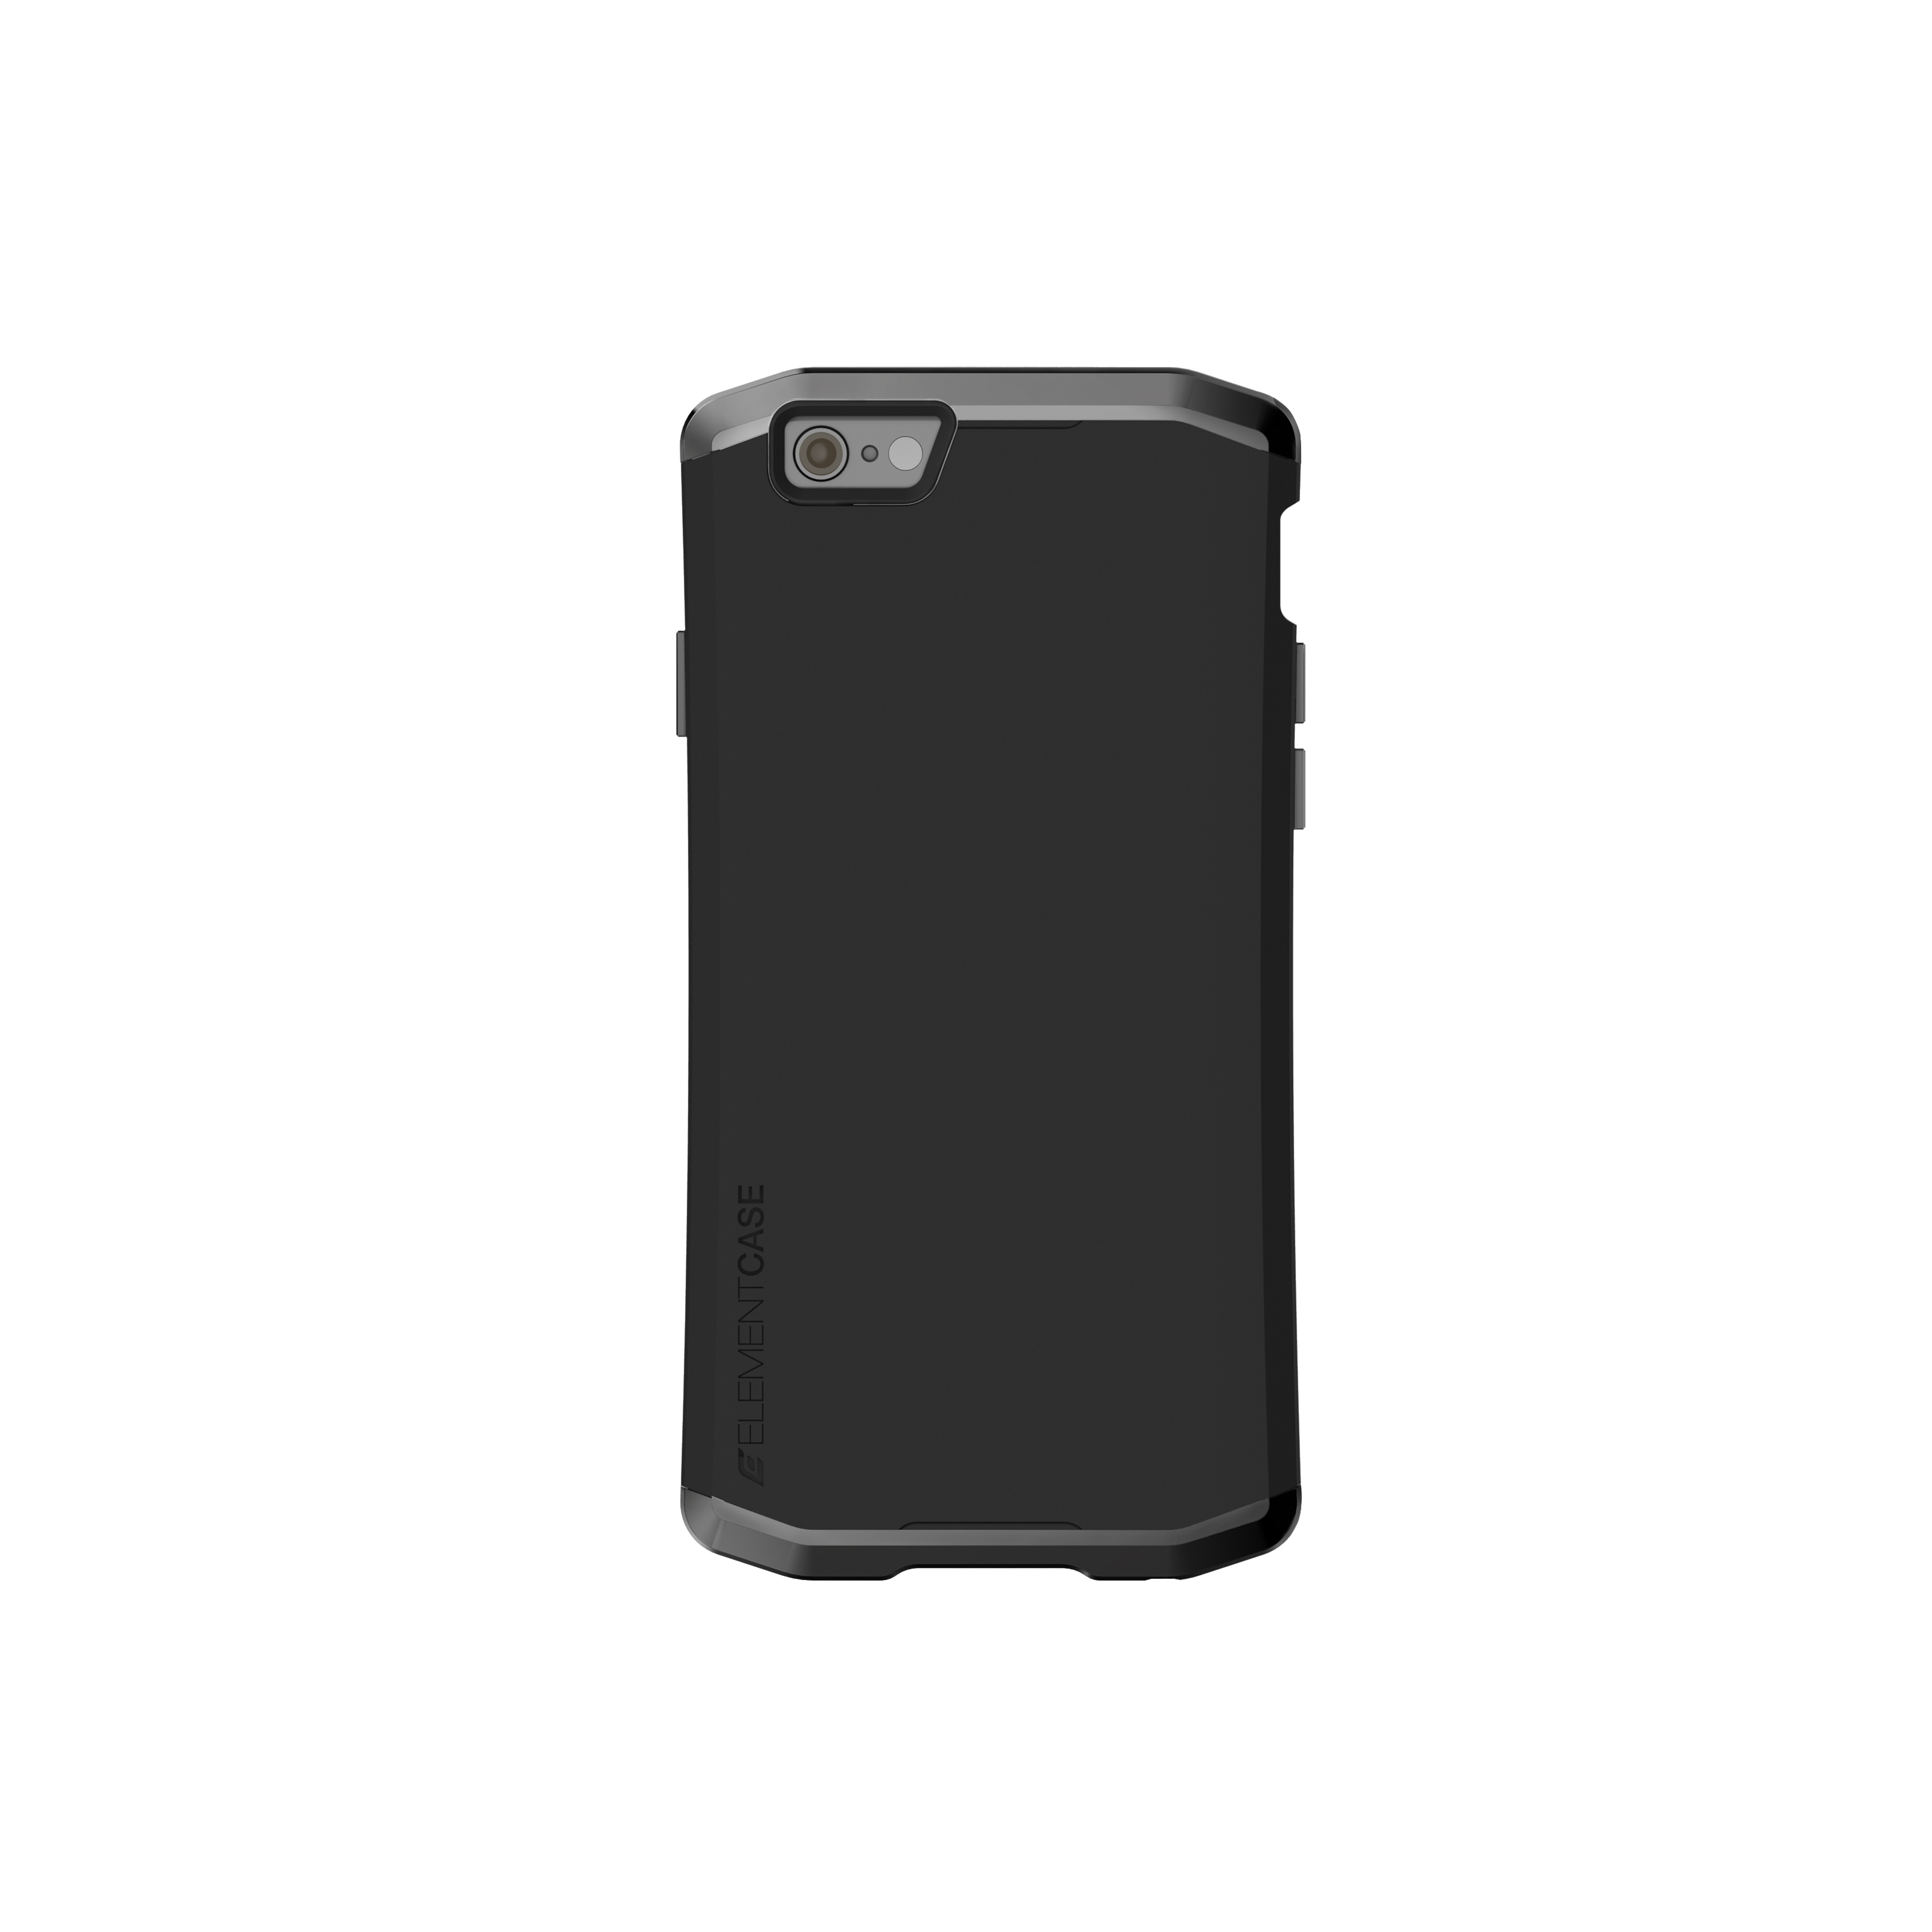 Billede af Element Case Solace (Chroma) II for iPhone 6 Plus/6s Plus black